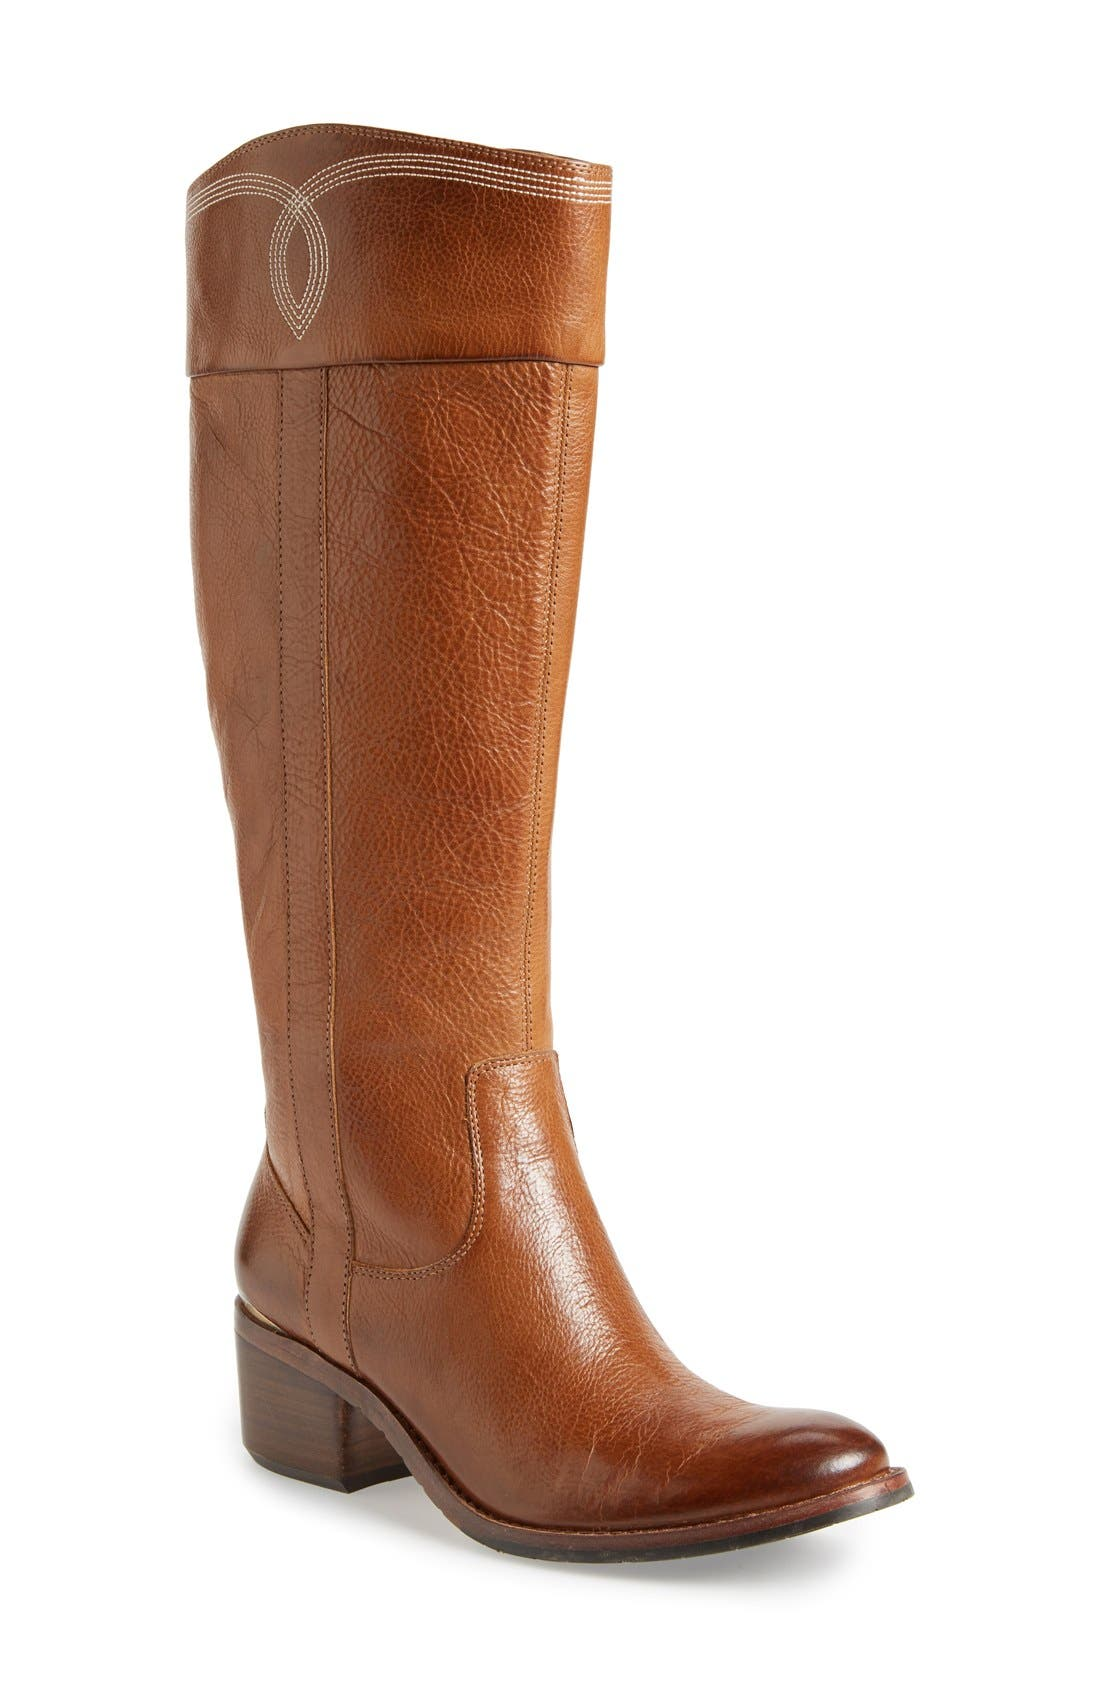 Alternate Image 1 Selected - Donald J Pliner 'Willi' Tall Boot (Women)